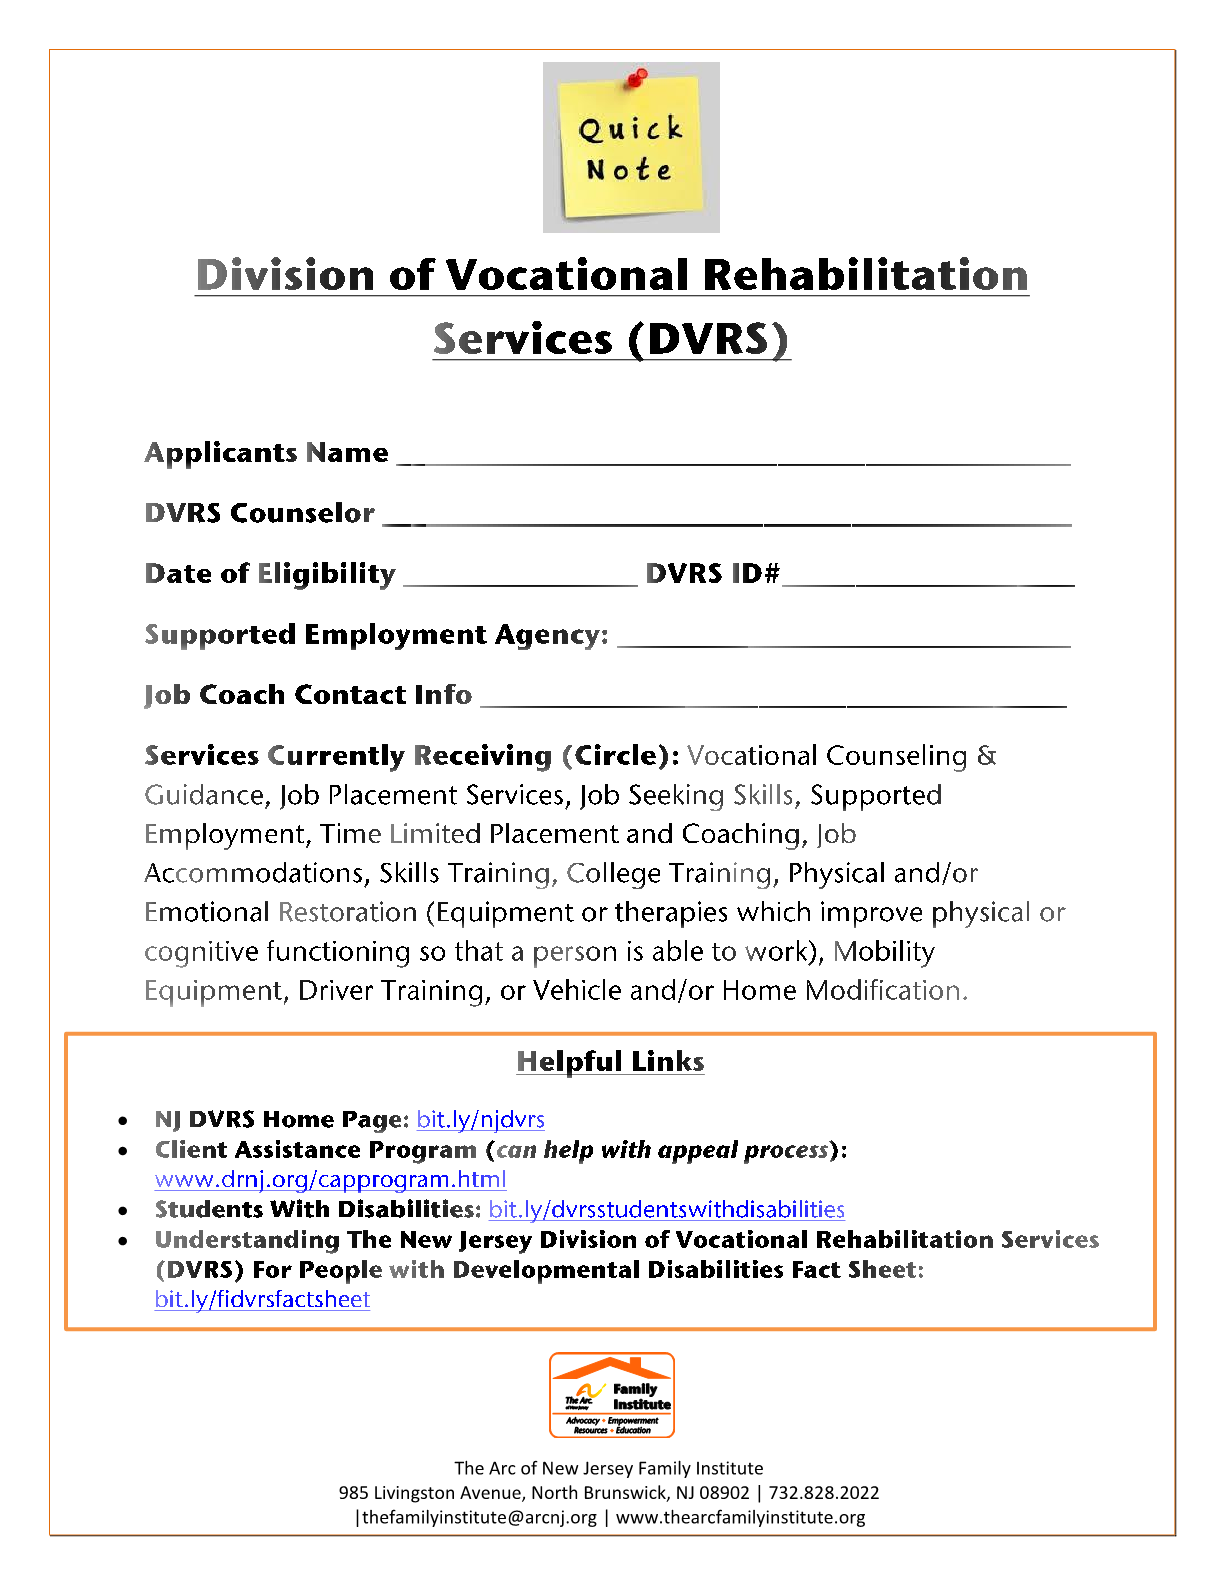 Division of Vocational Rehabilitation Services (DVRS)